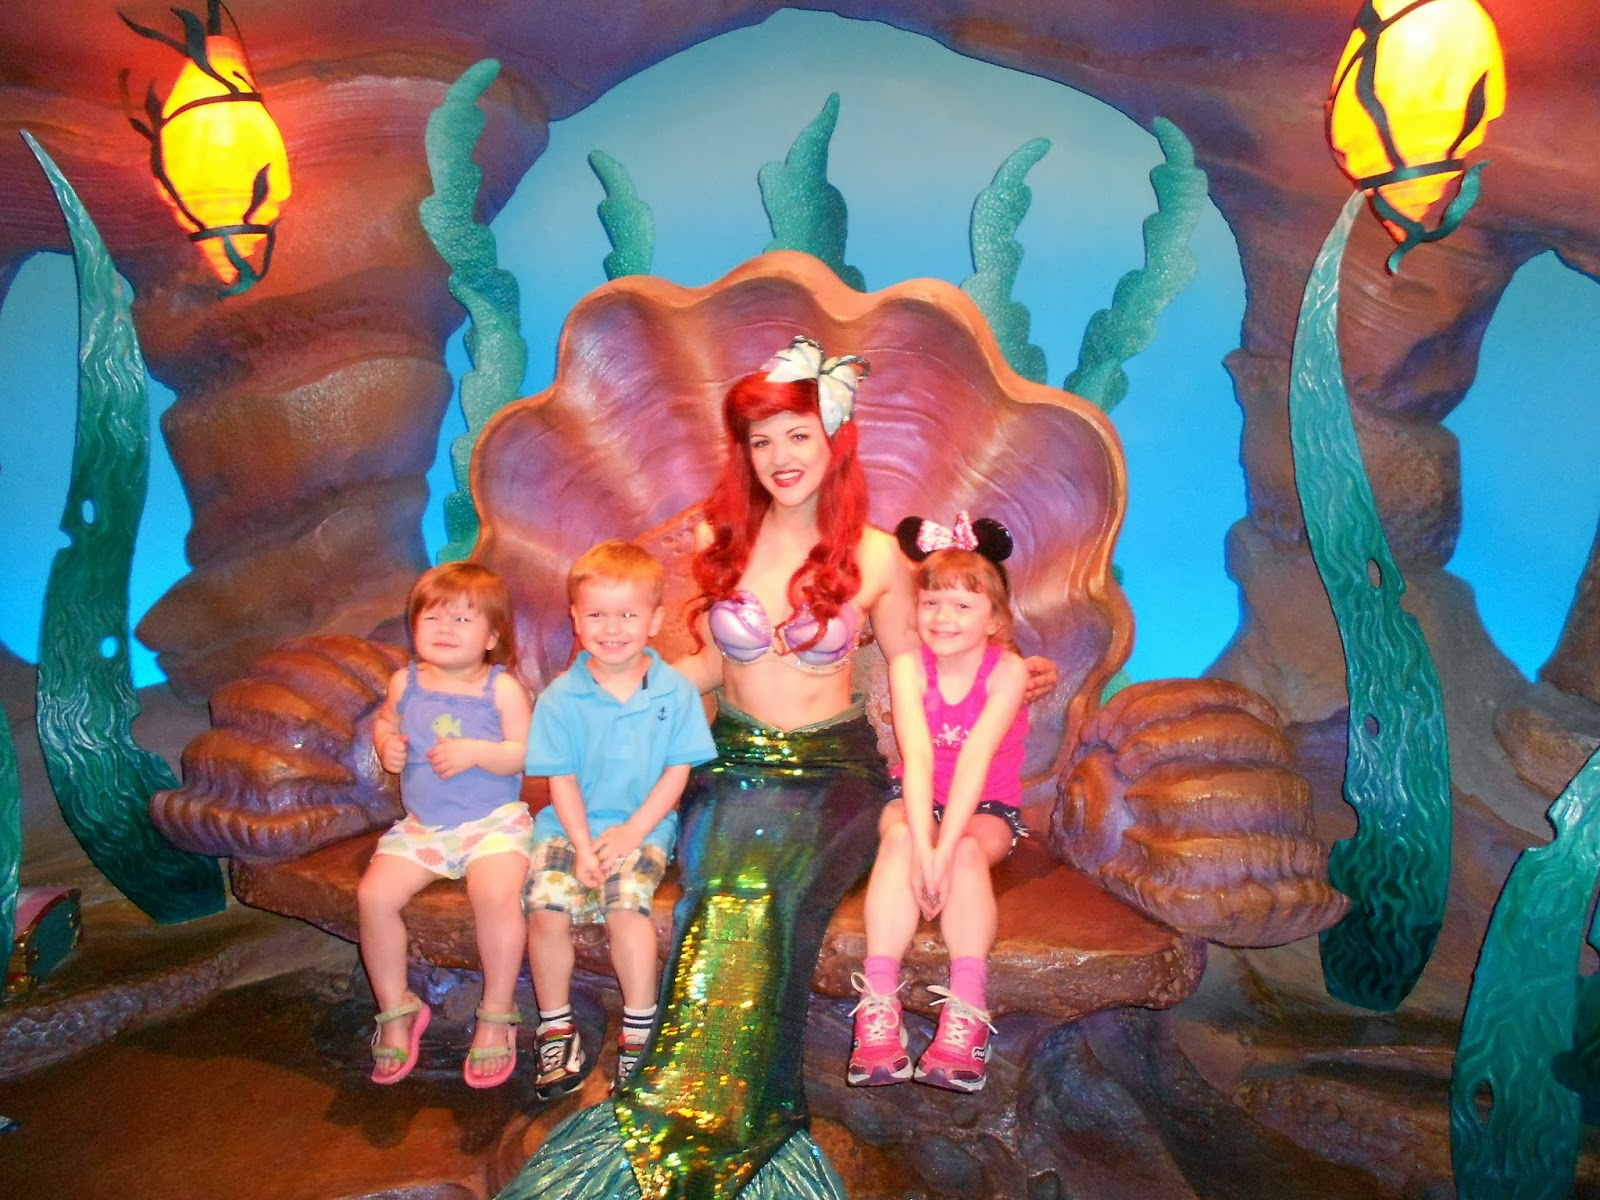 Adventures with toddlers and preschoolers ariel and prince eric my children could not wait to meet ariel at the magic kingdom at the new ariel meet n greet in fantasyland this was the highlight of my childrens day m4hsunfo